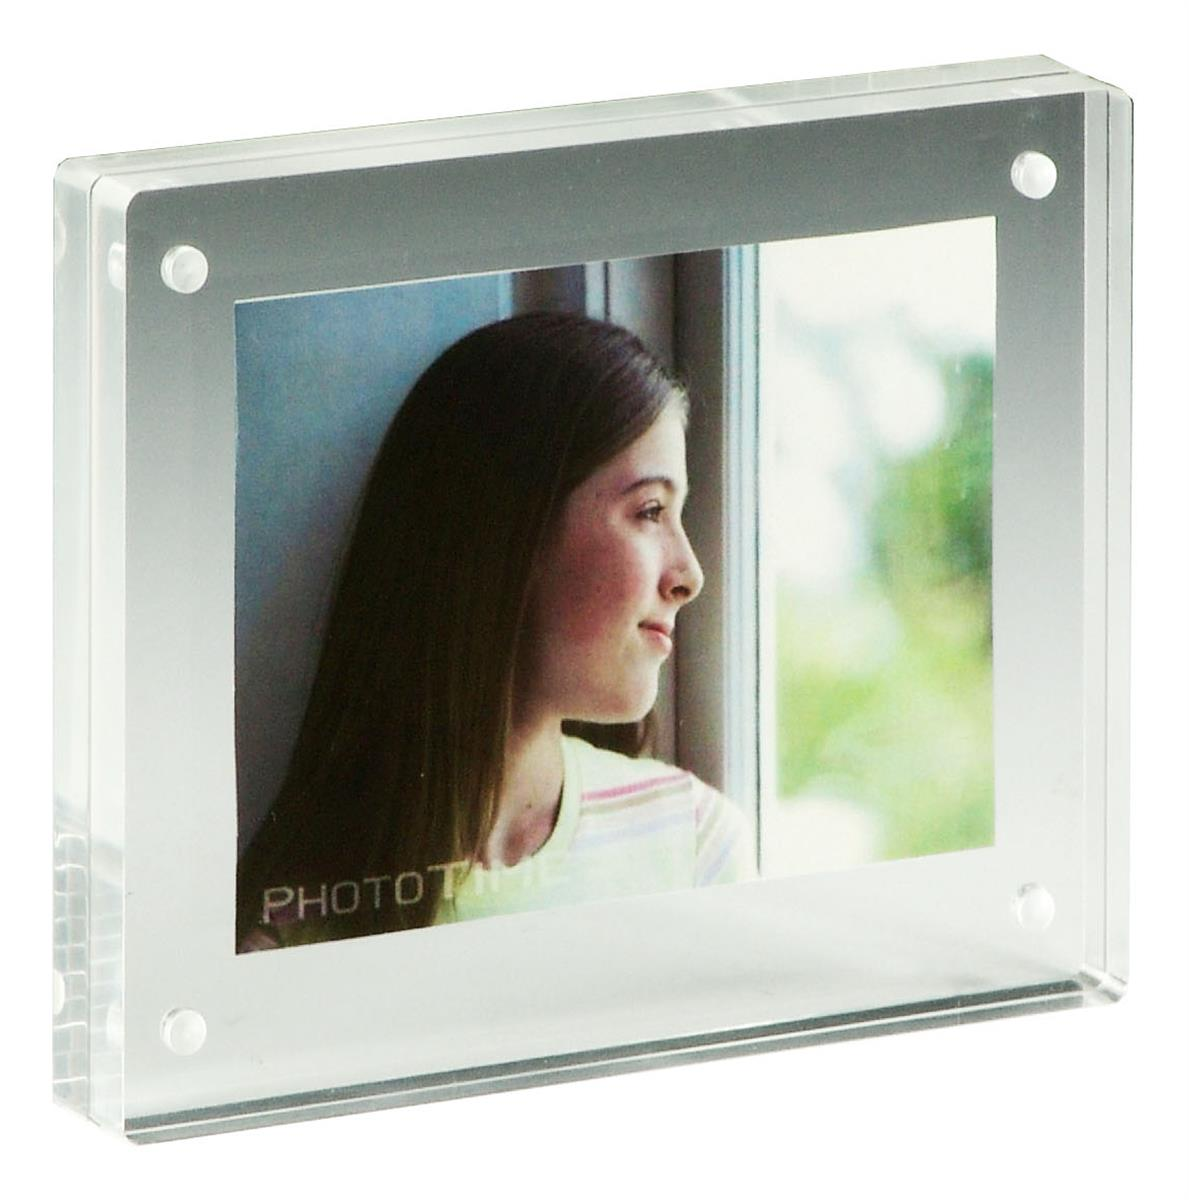 3 5 X 5 Magnetic Photo Holders W Clear Acrylic Block Design